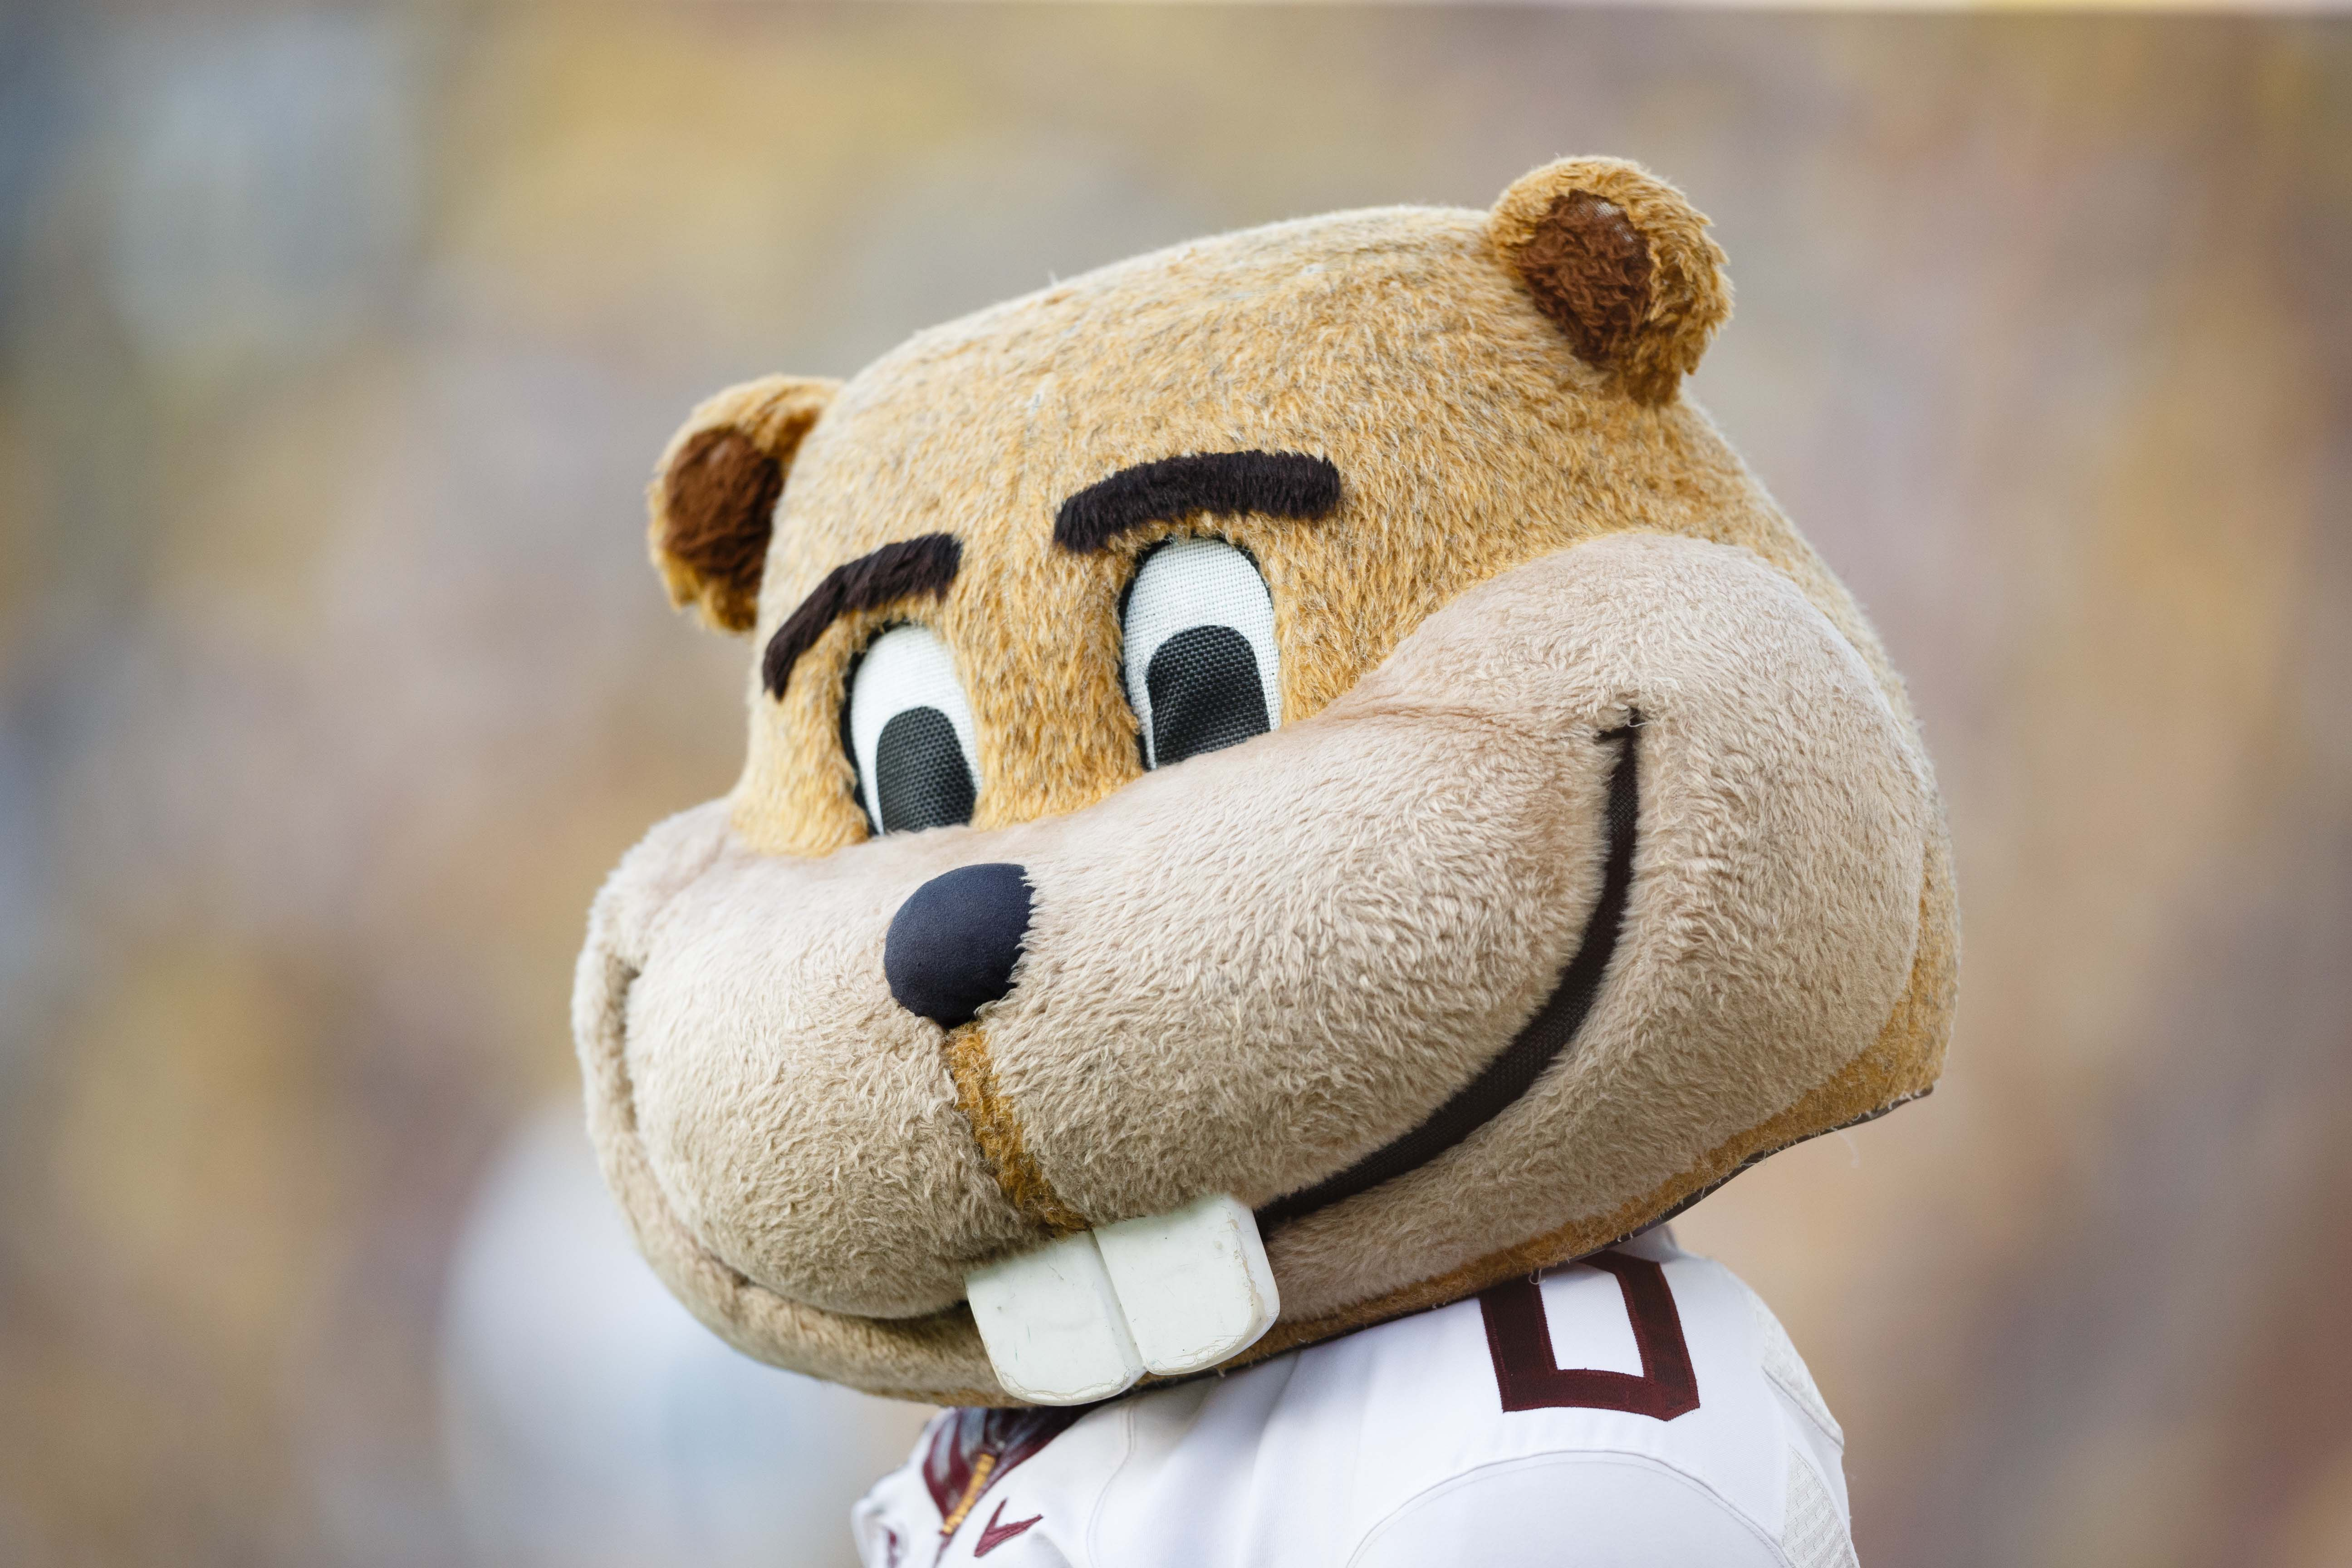 Goldy loves all of you.